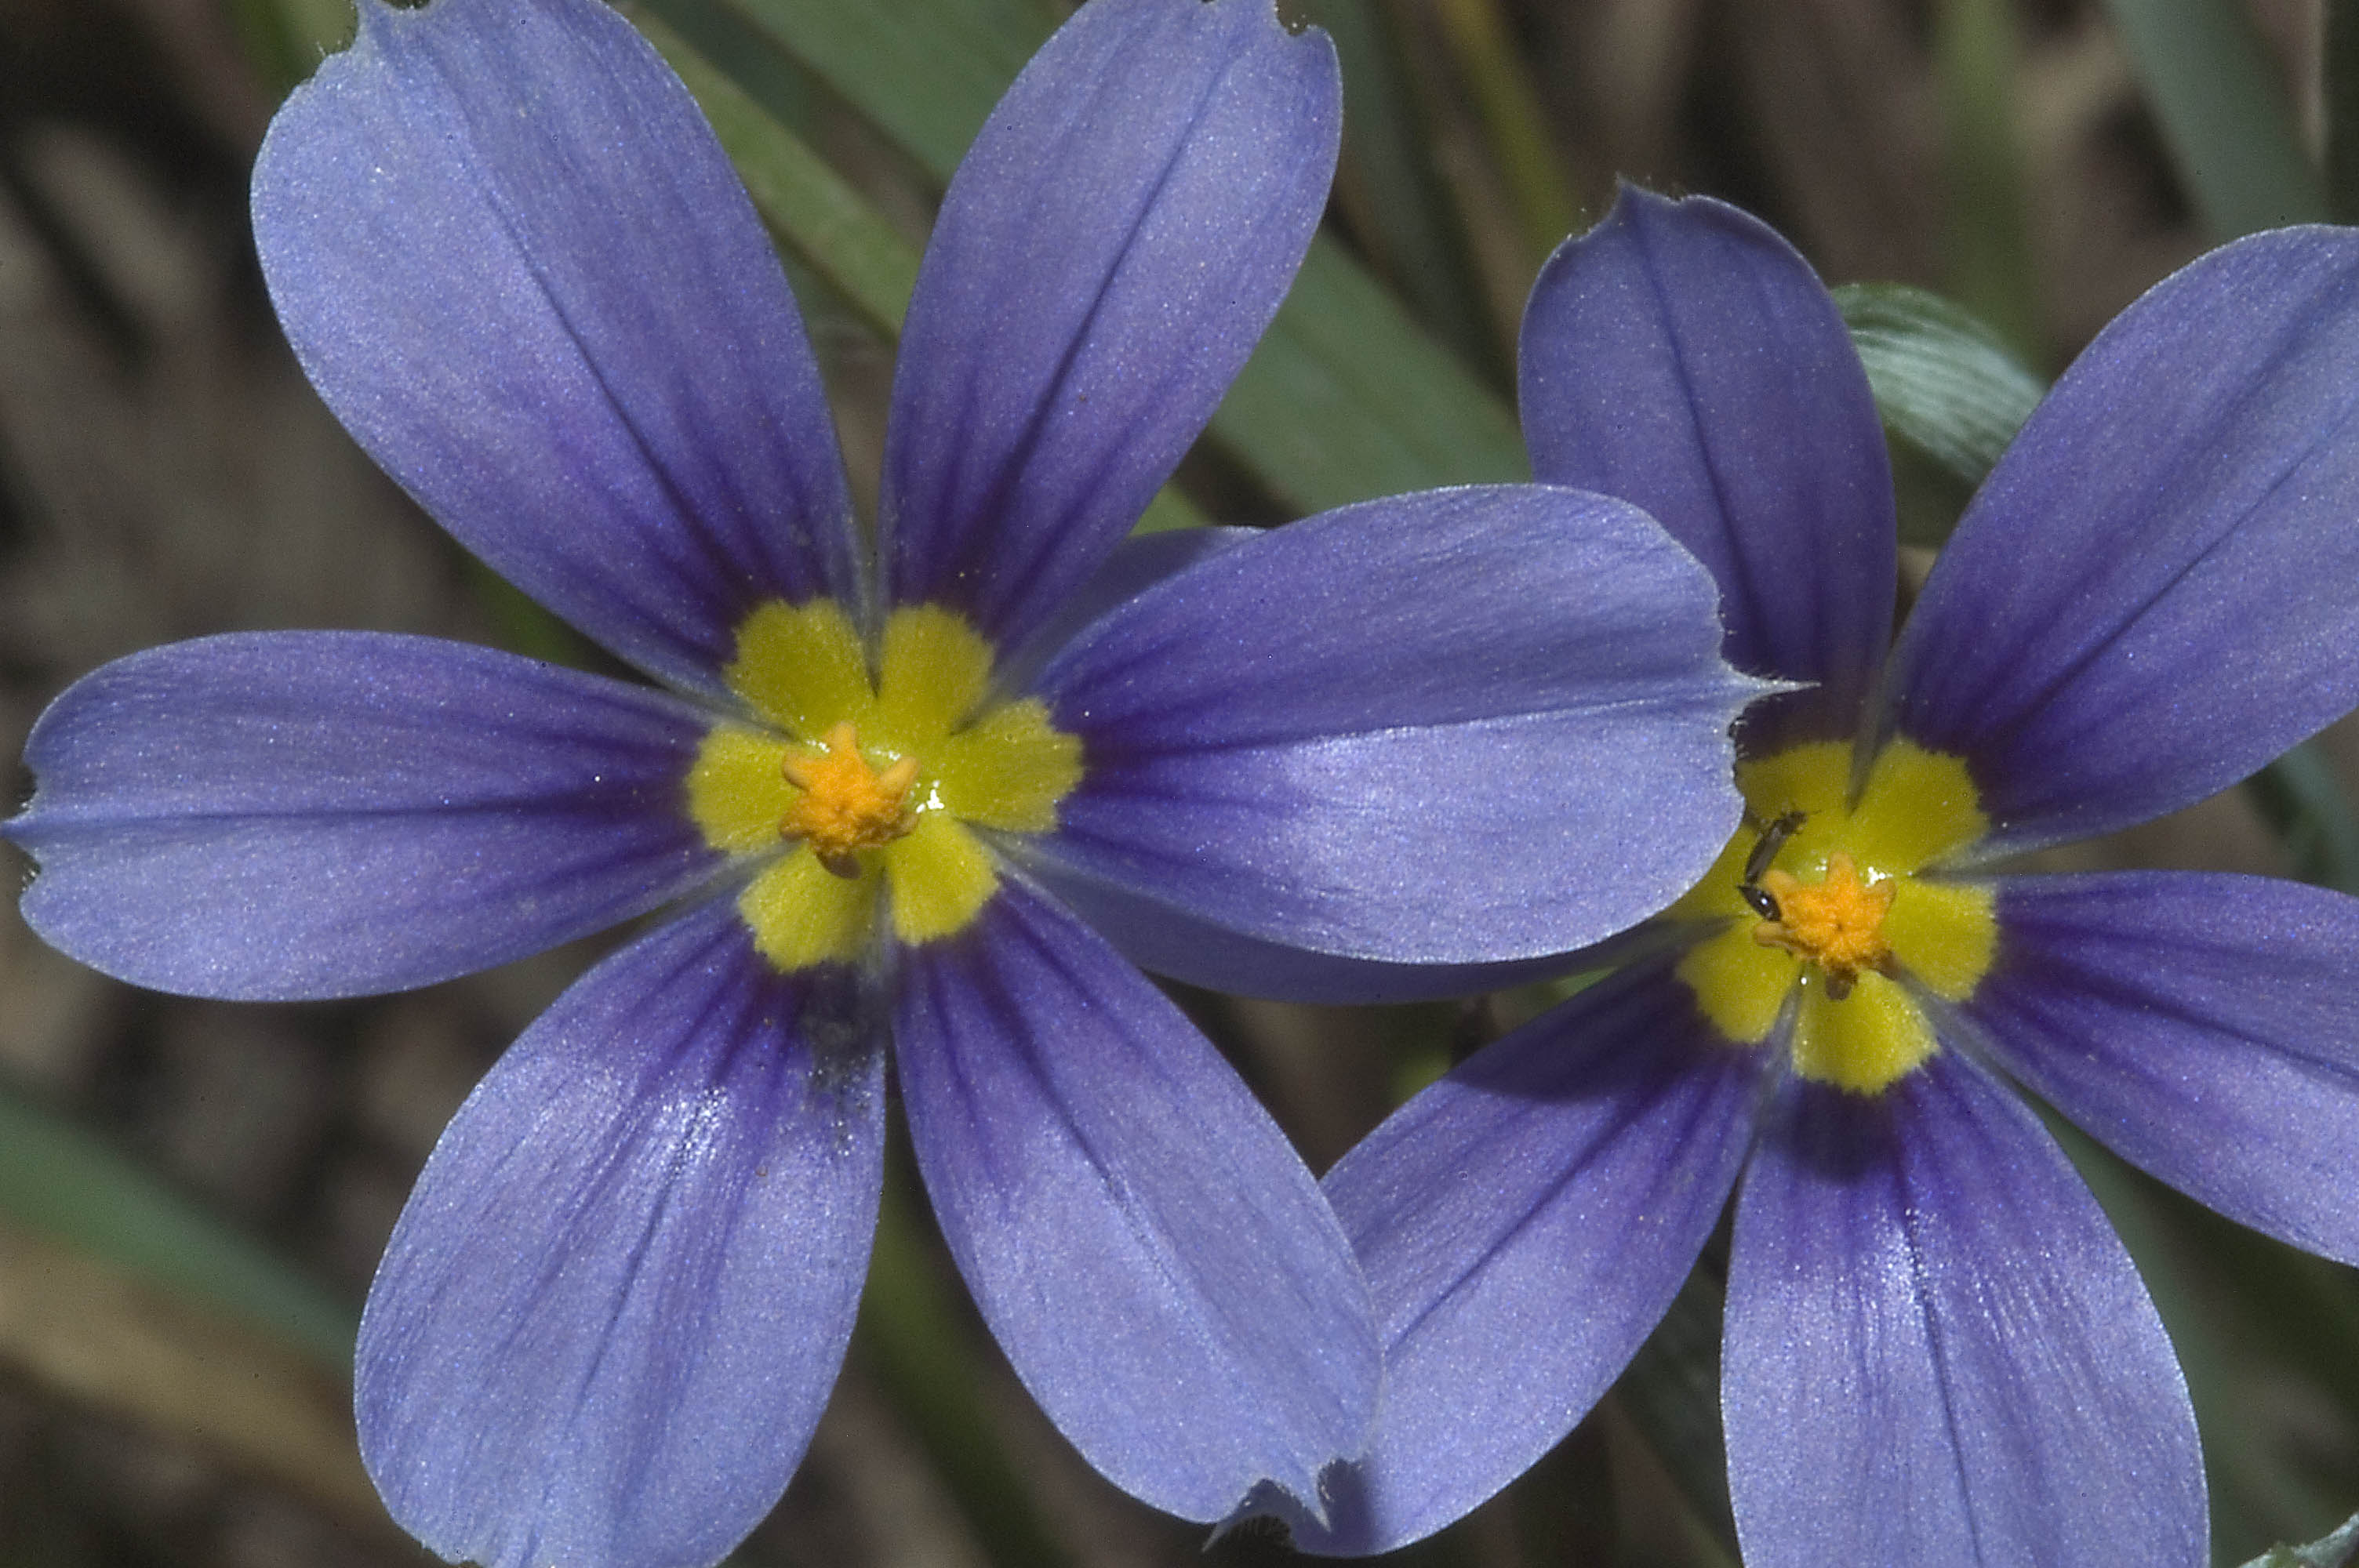 Photo 625-24: 6-petaled star flowers of Blue eyed grass ...